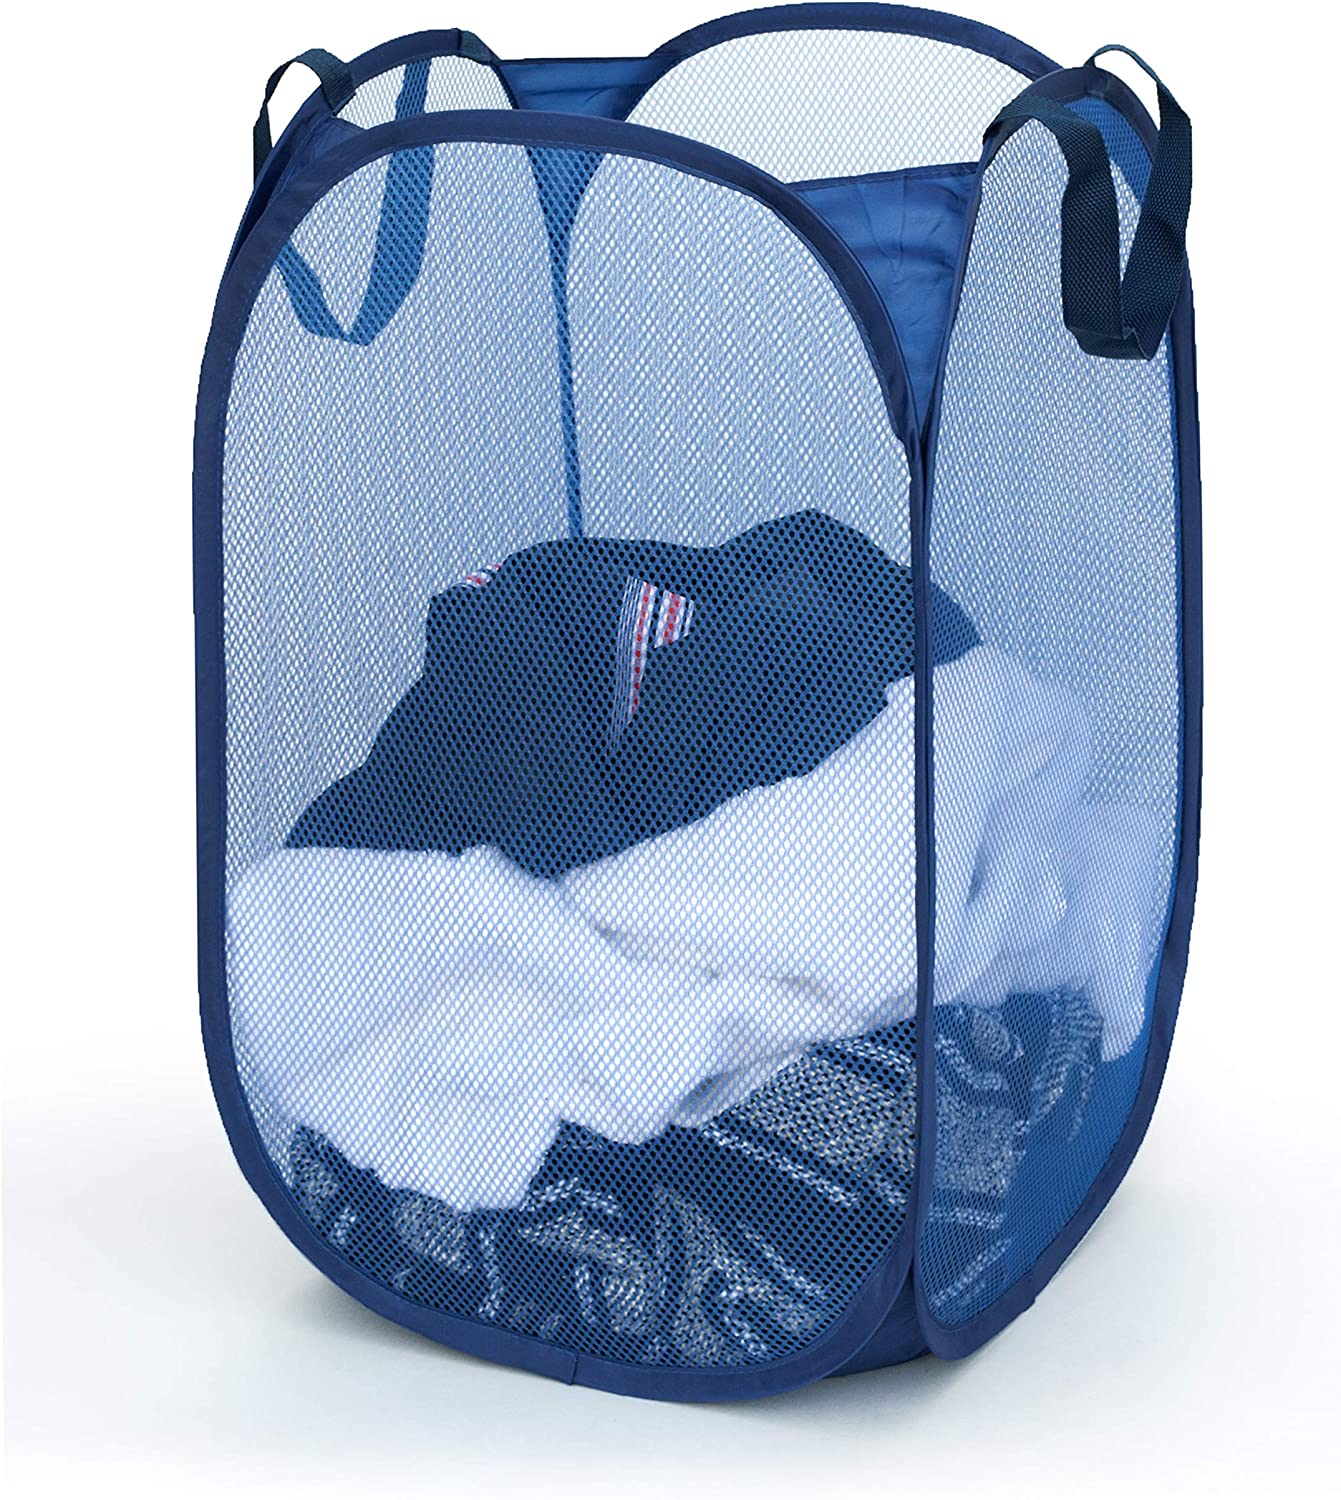 Topline Pop-Up Square Laundry Hamper, Durable Ventilated Mesh with Carry Handles (Navy)